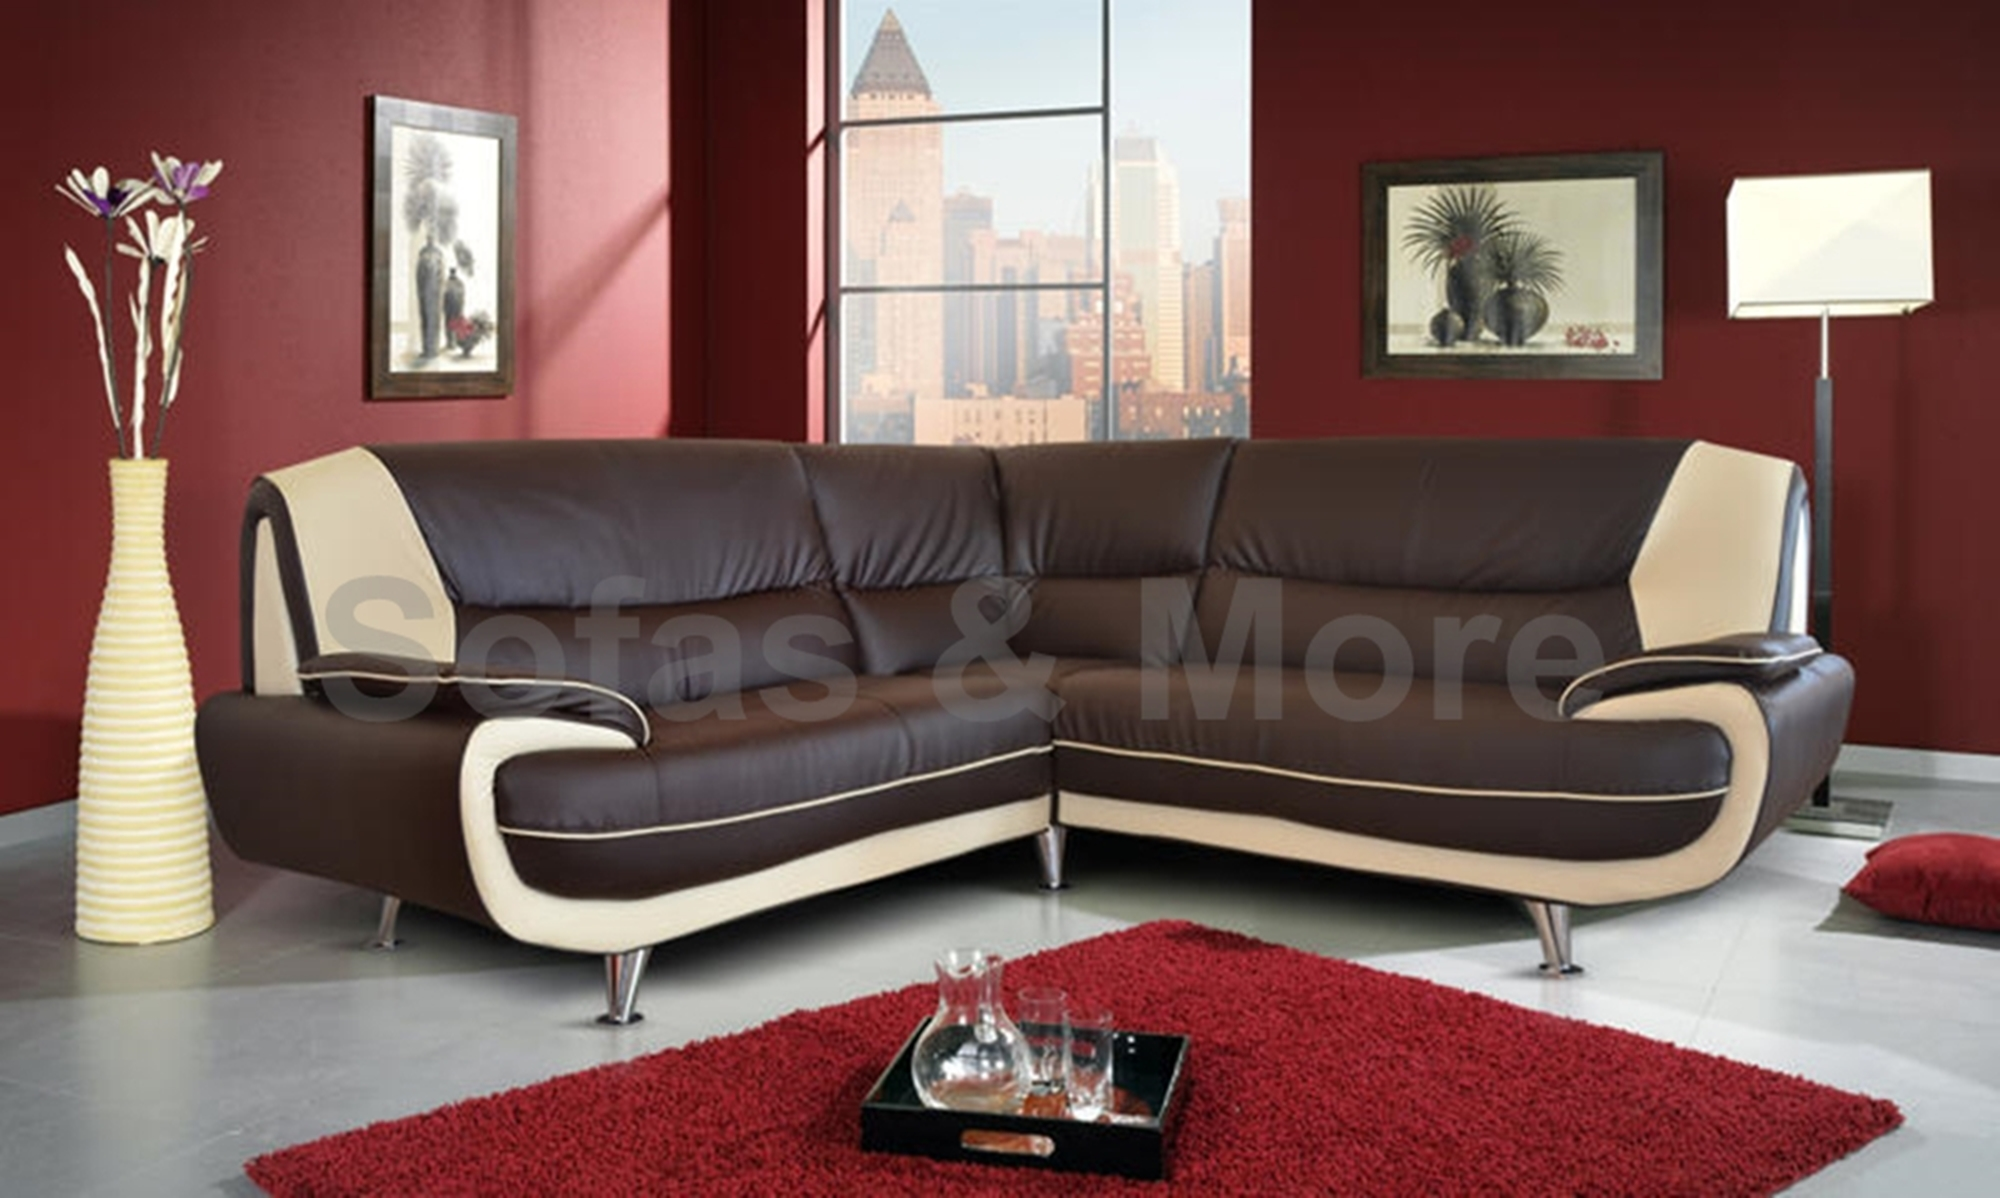 NEW 3+2 SEATER LEATHER SOFA SET BROWN CREAM 3 SEATER 2